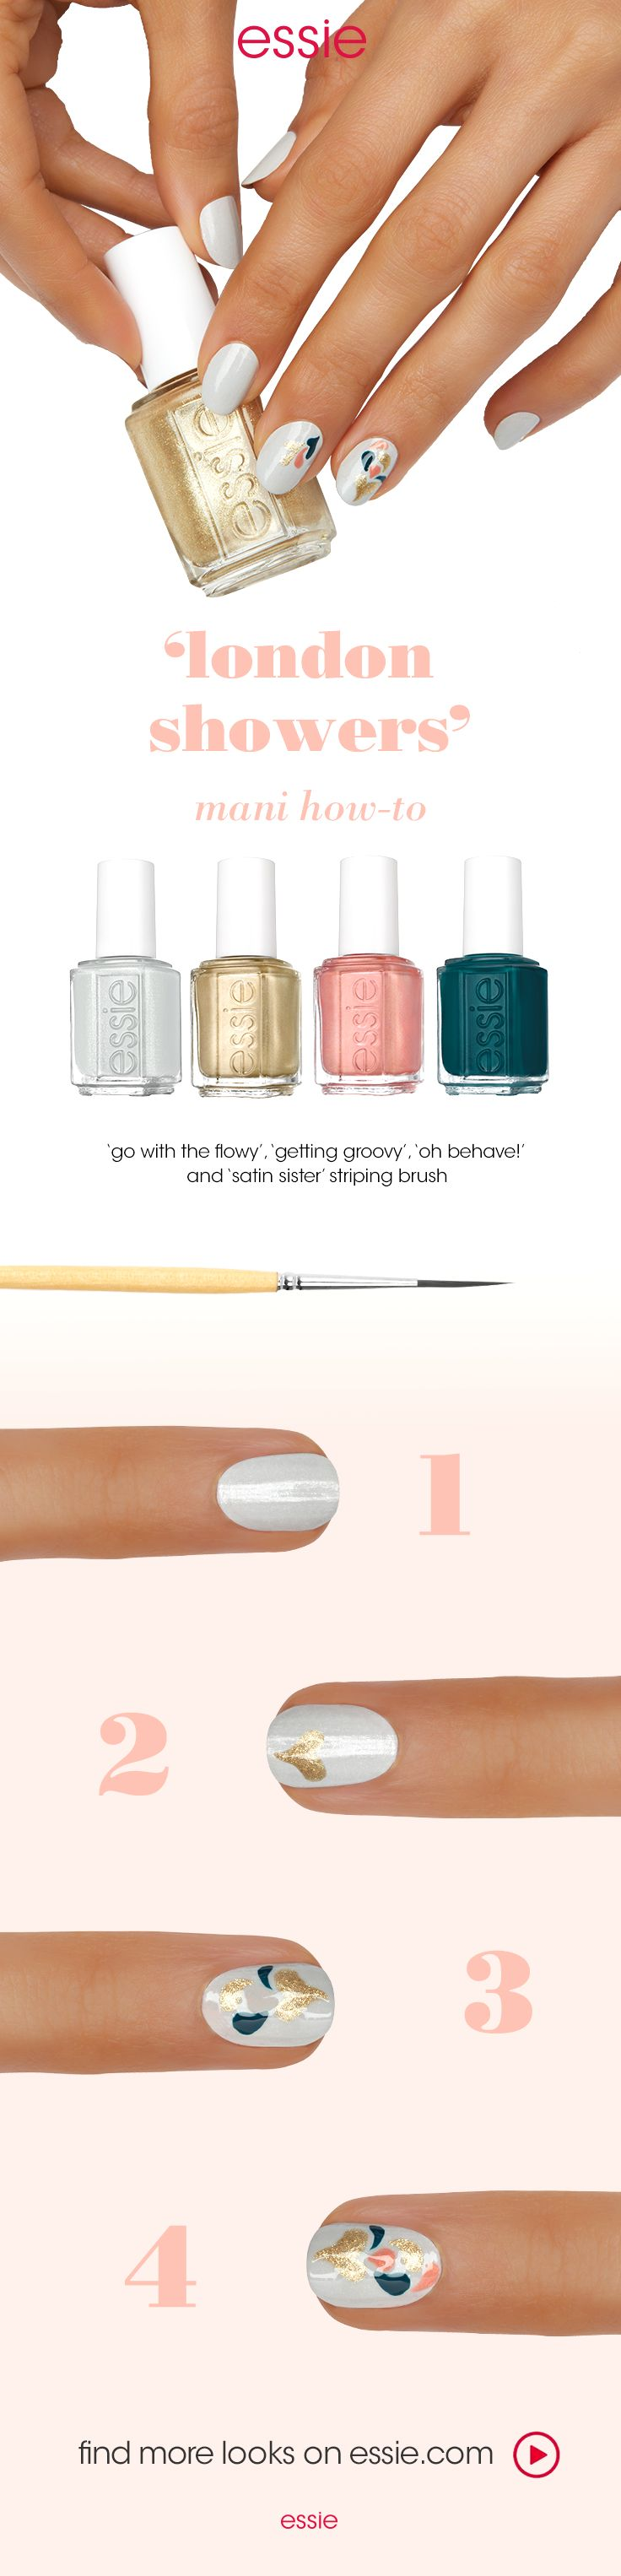 """It's getting groovy with nail art featuring the essie winter 2016 collection. Get this look:  step 1: after a thin layer of essie base coat, apply two coats of dove gray nail polish 'go with the flowy'.  step 2: using a striping brush, create a heart-shaped """"droplet"""" at the tip of the nail using metallic gold 'getting groovy'.  step 3: continue to add single droplets using peacock blue 'satin sister', 'getting groovy', and 'oh behave!' creating a fluid & natural shape. seal with essie top…"""